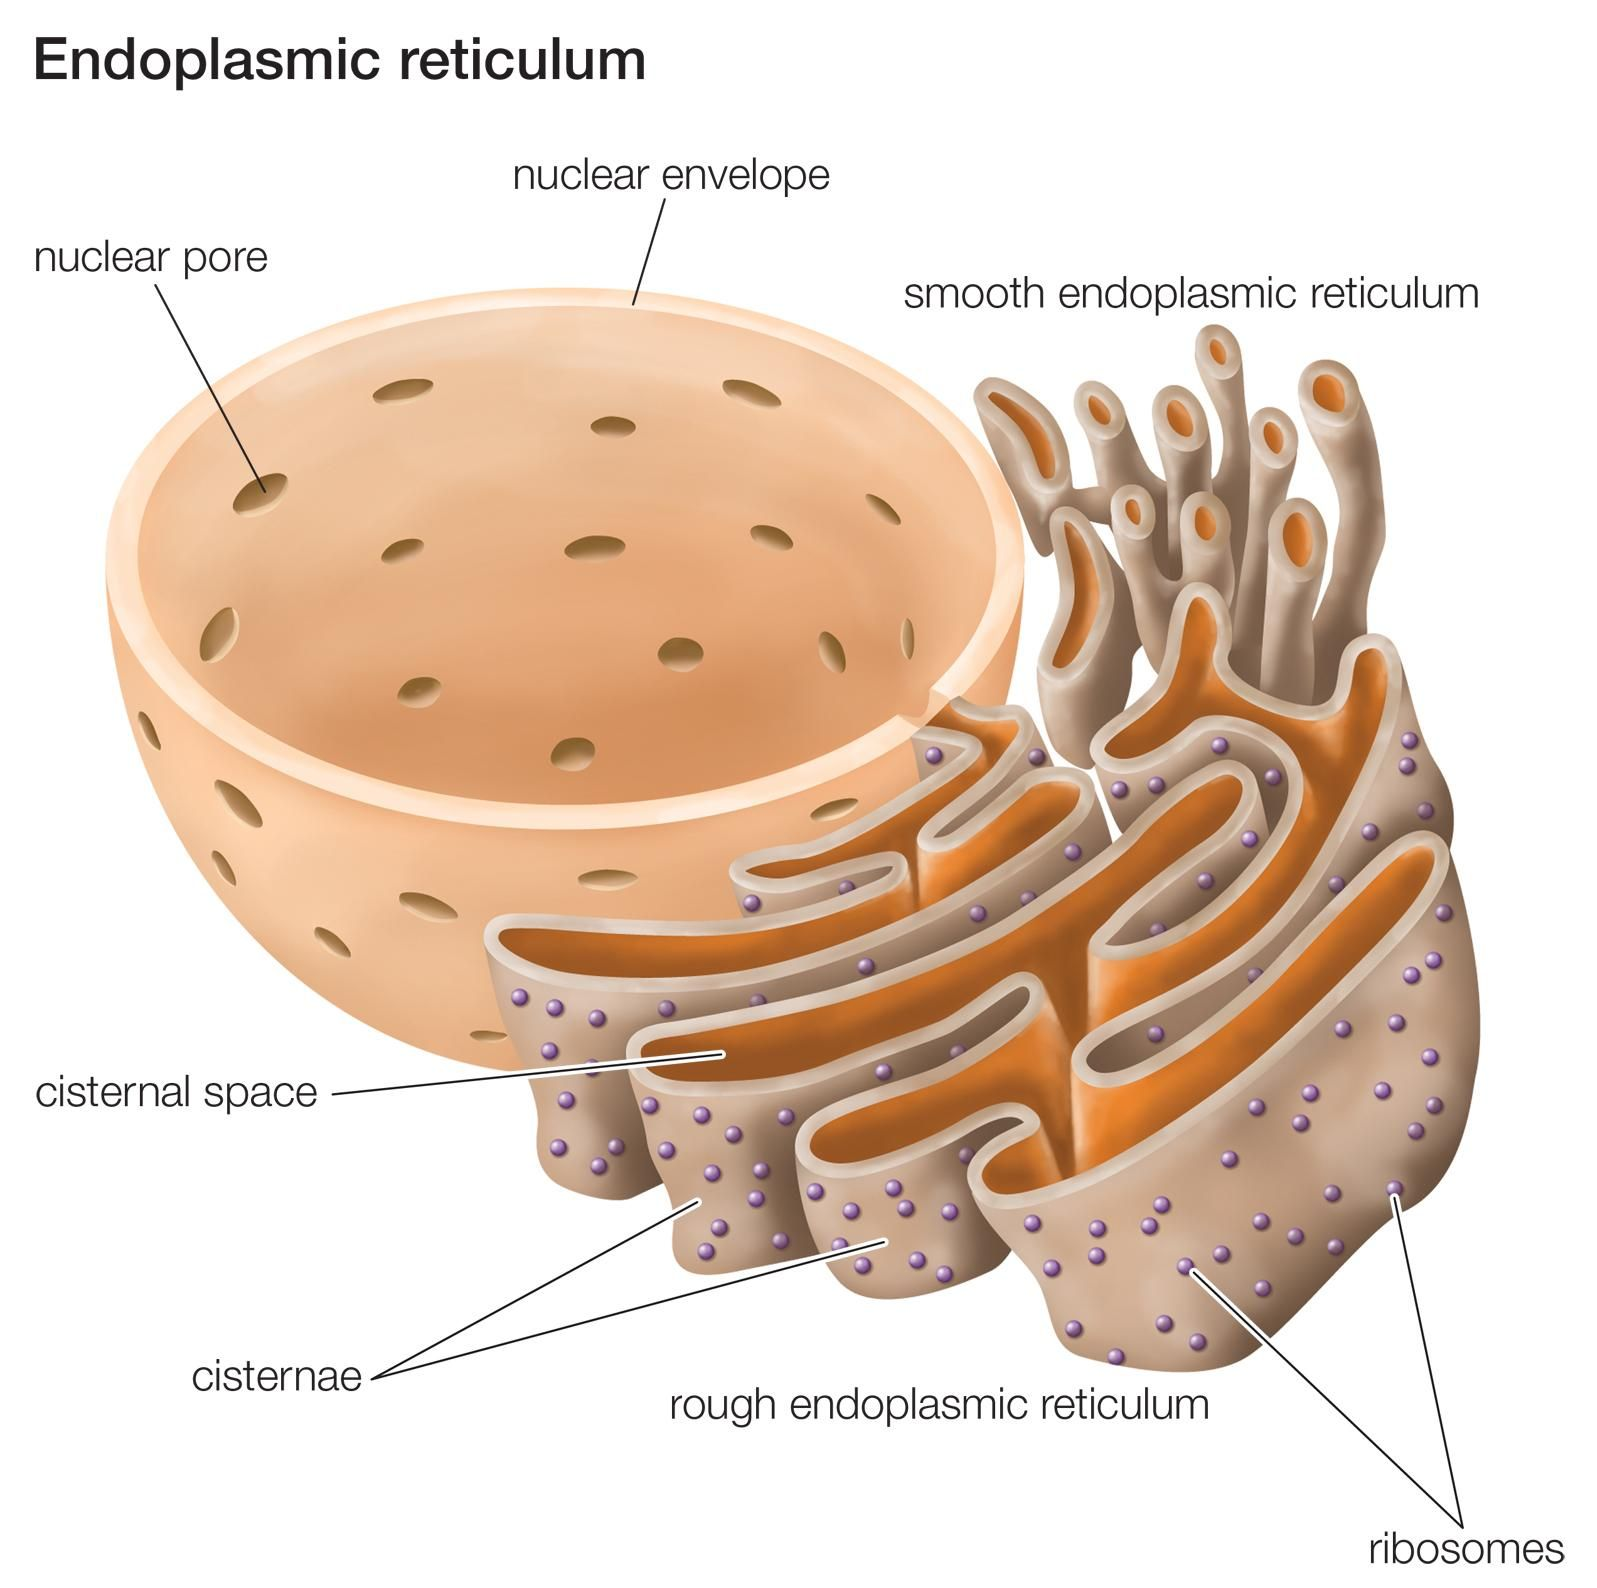 Endoplasmic reticulum is a continuous membrane, which is